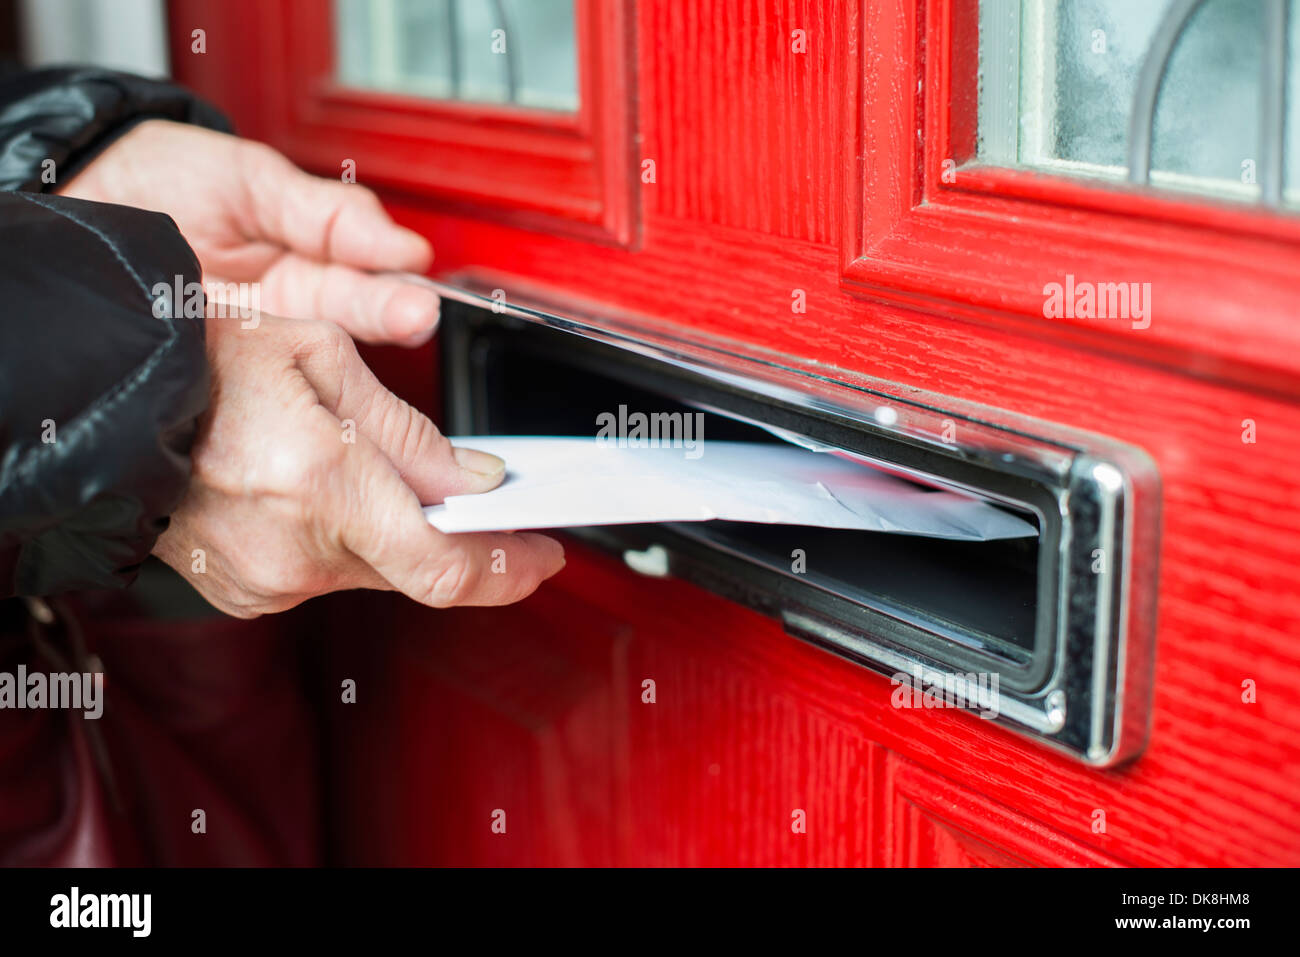 Hand putting Letter in a red mailbox. - Stock Image